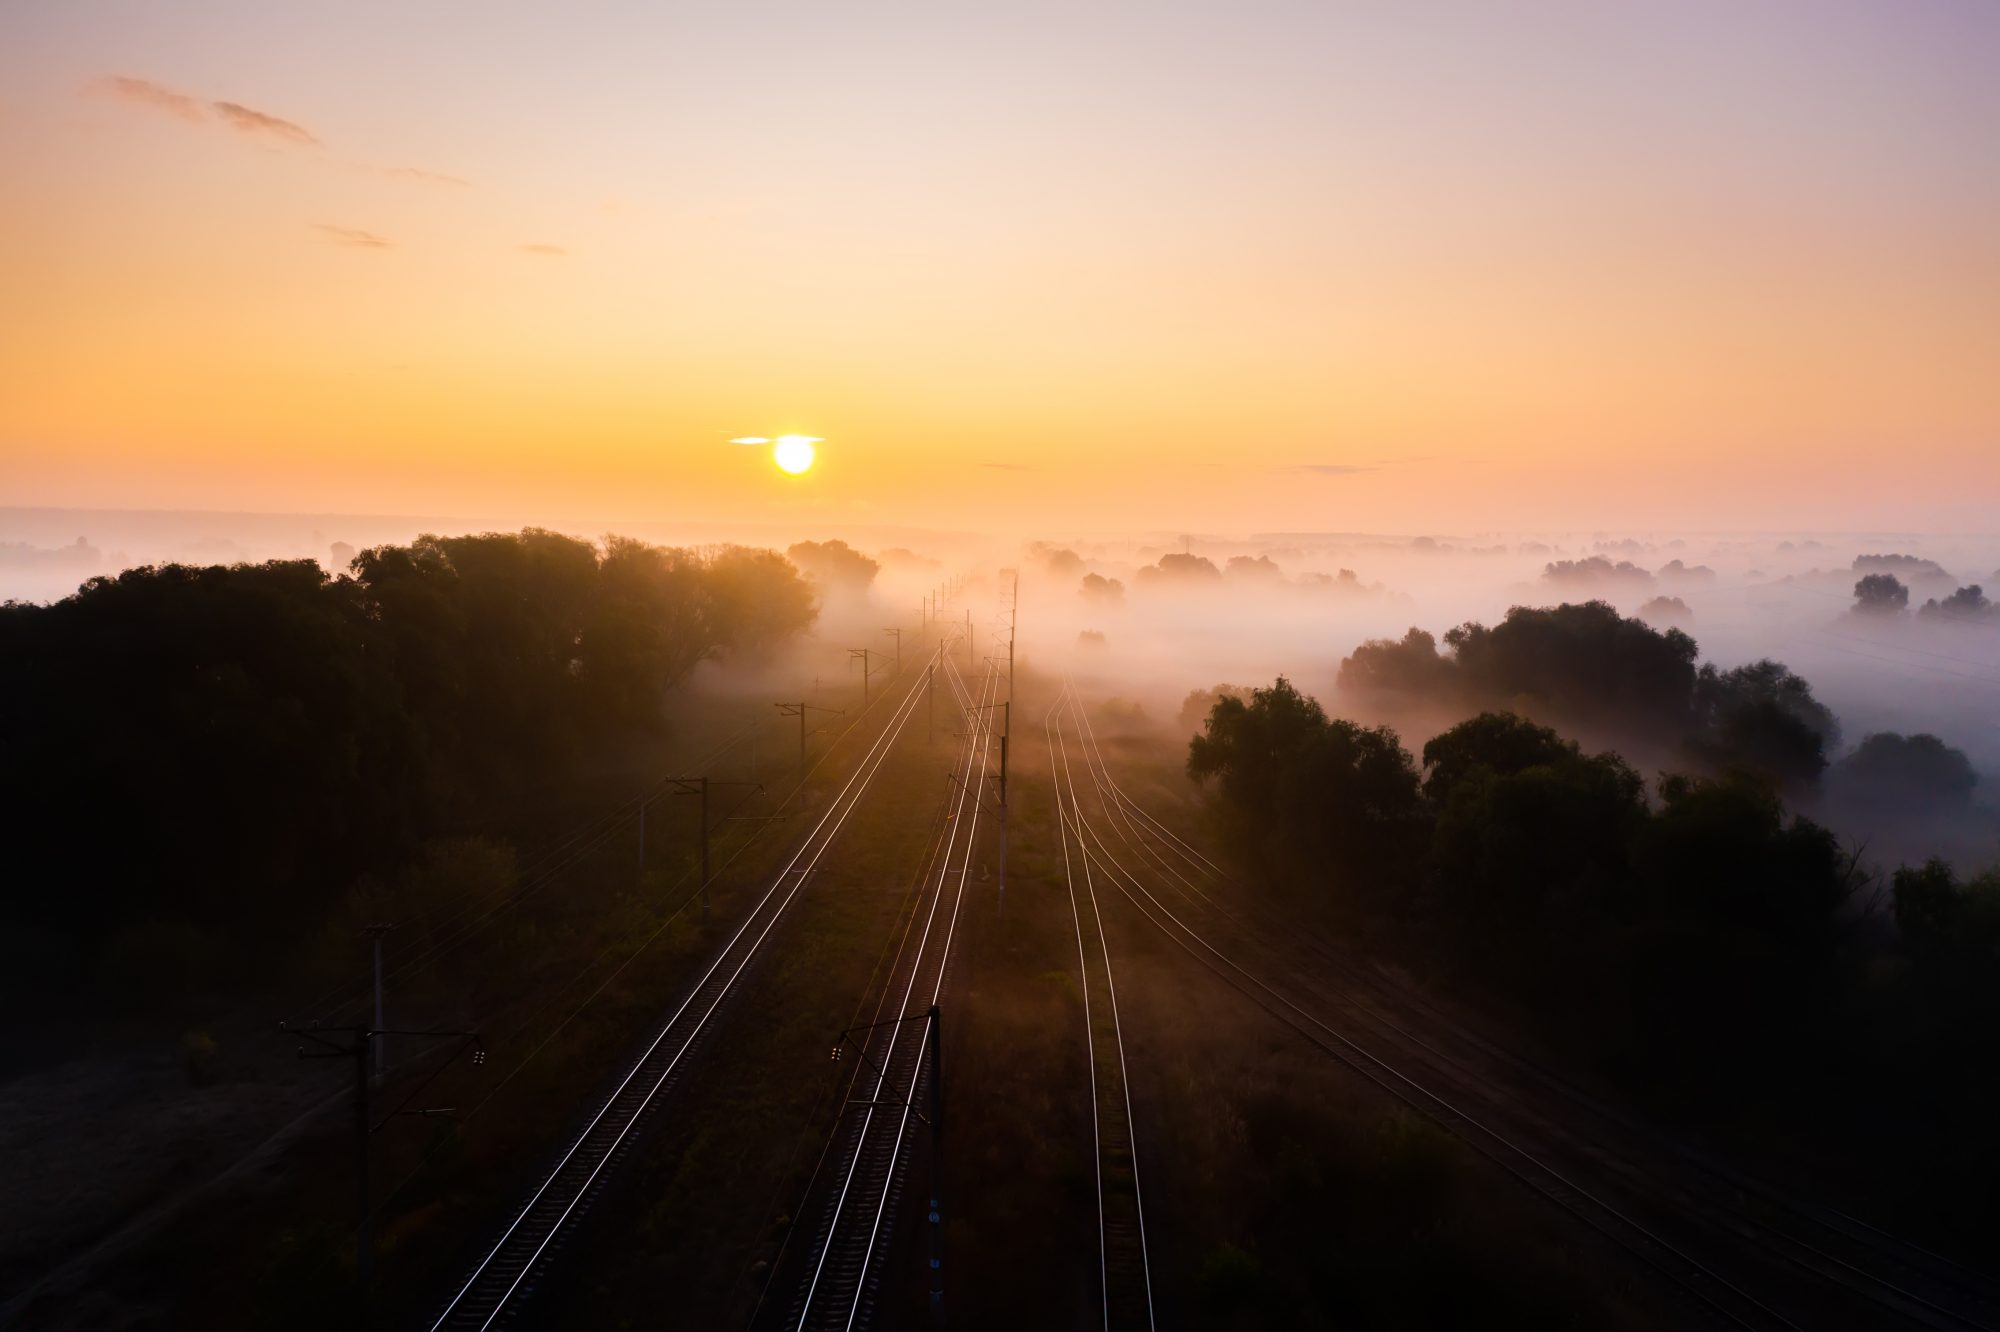 Railway track at sunrise in the fog. View from the drone.